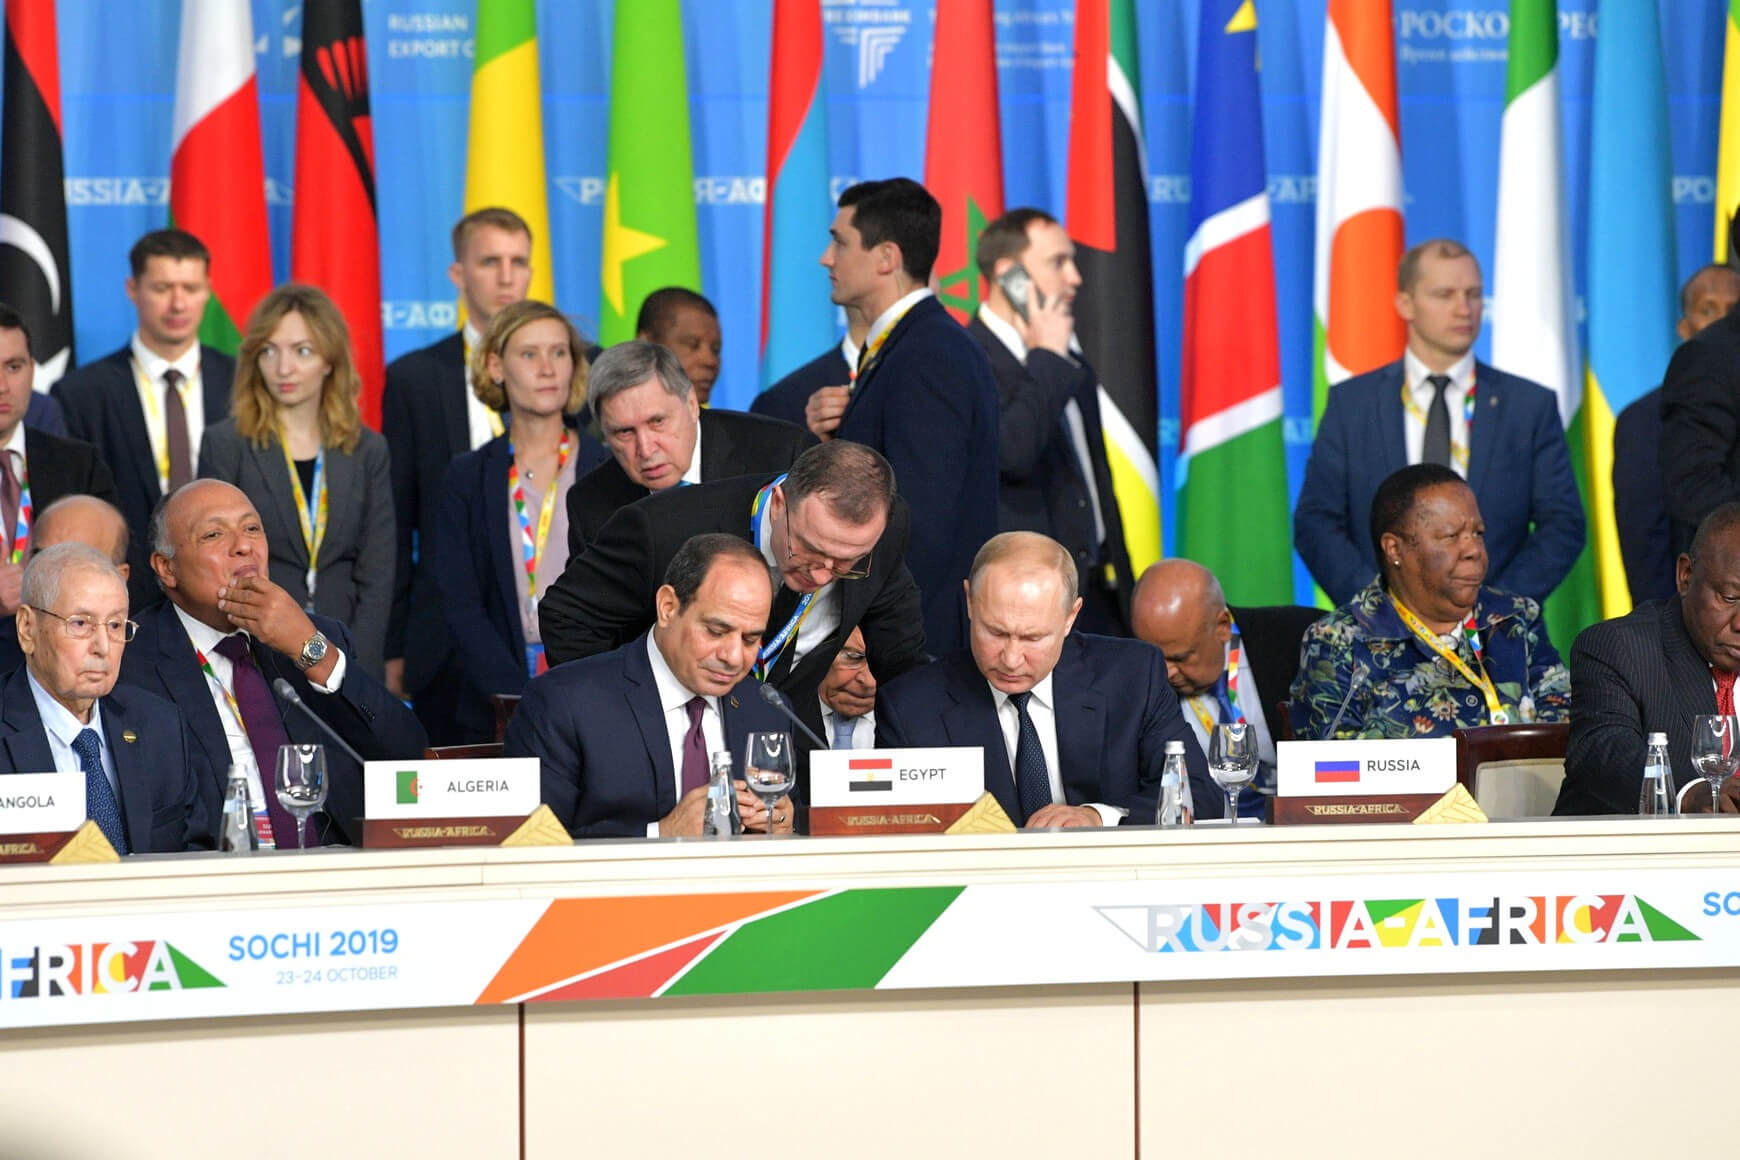 Russia - Africa Summit 2019